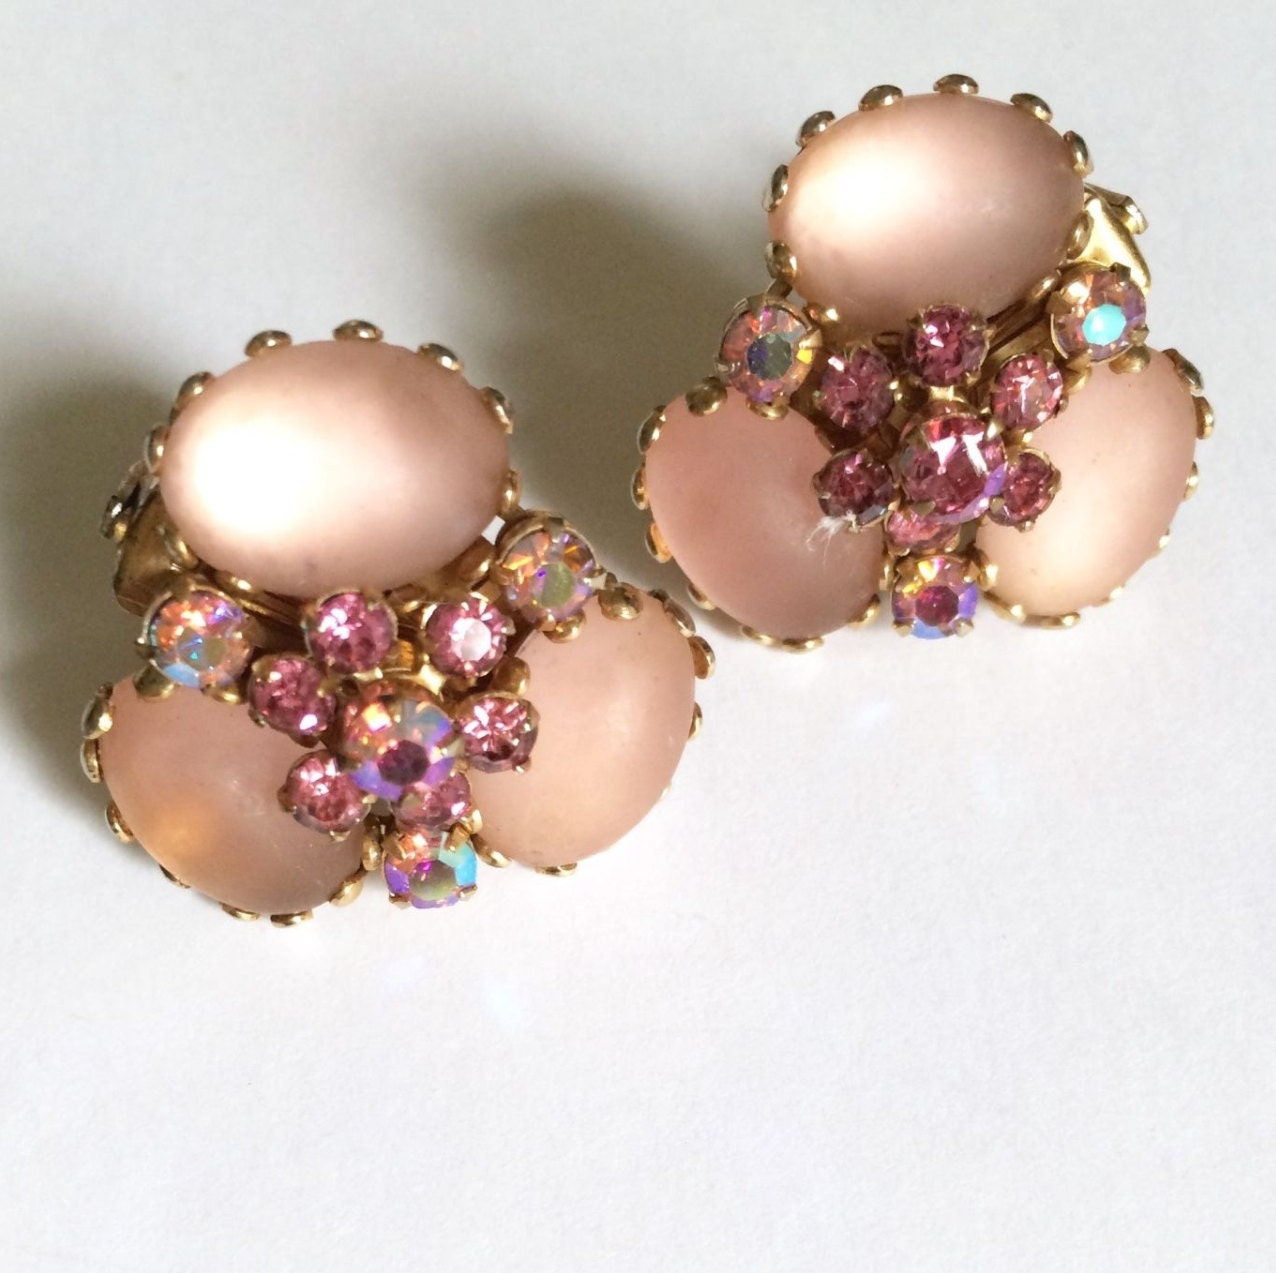 pink moonstone jewelry vintage - photo #14